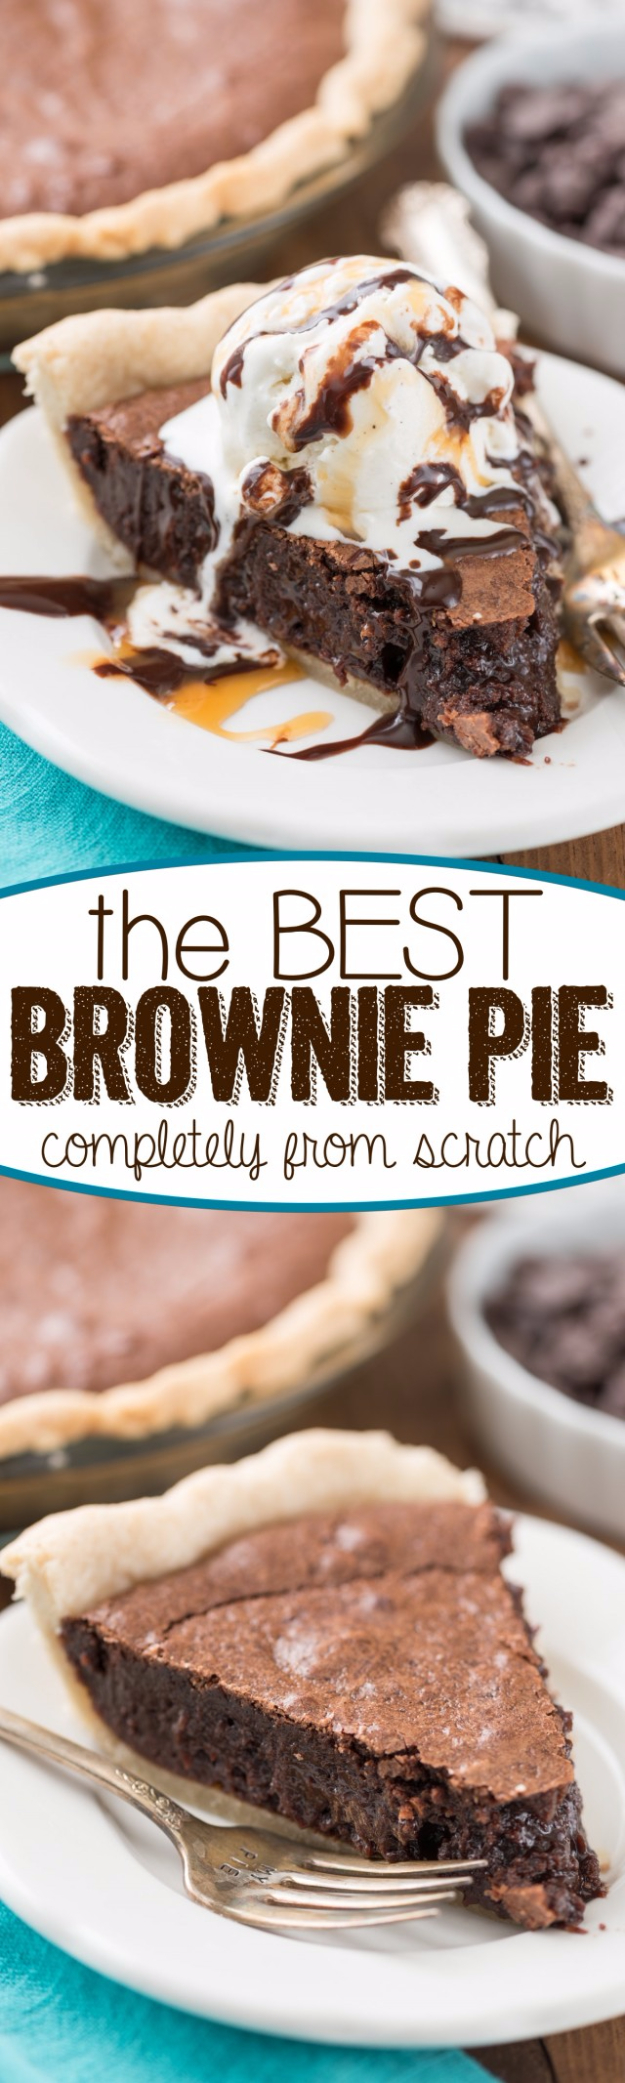 Best Pie Recipes - Best Brownie Pie - Easy Pie Recipes From Scratch for Pecan, Apple, Banana, Pumpkin, Fruit, Peach and Chocolate Pies. Yummy Graham Cracker Crusts and Homemade Meringue #recipes #dessert